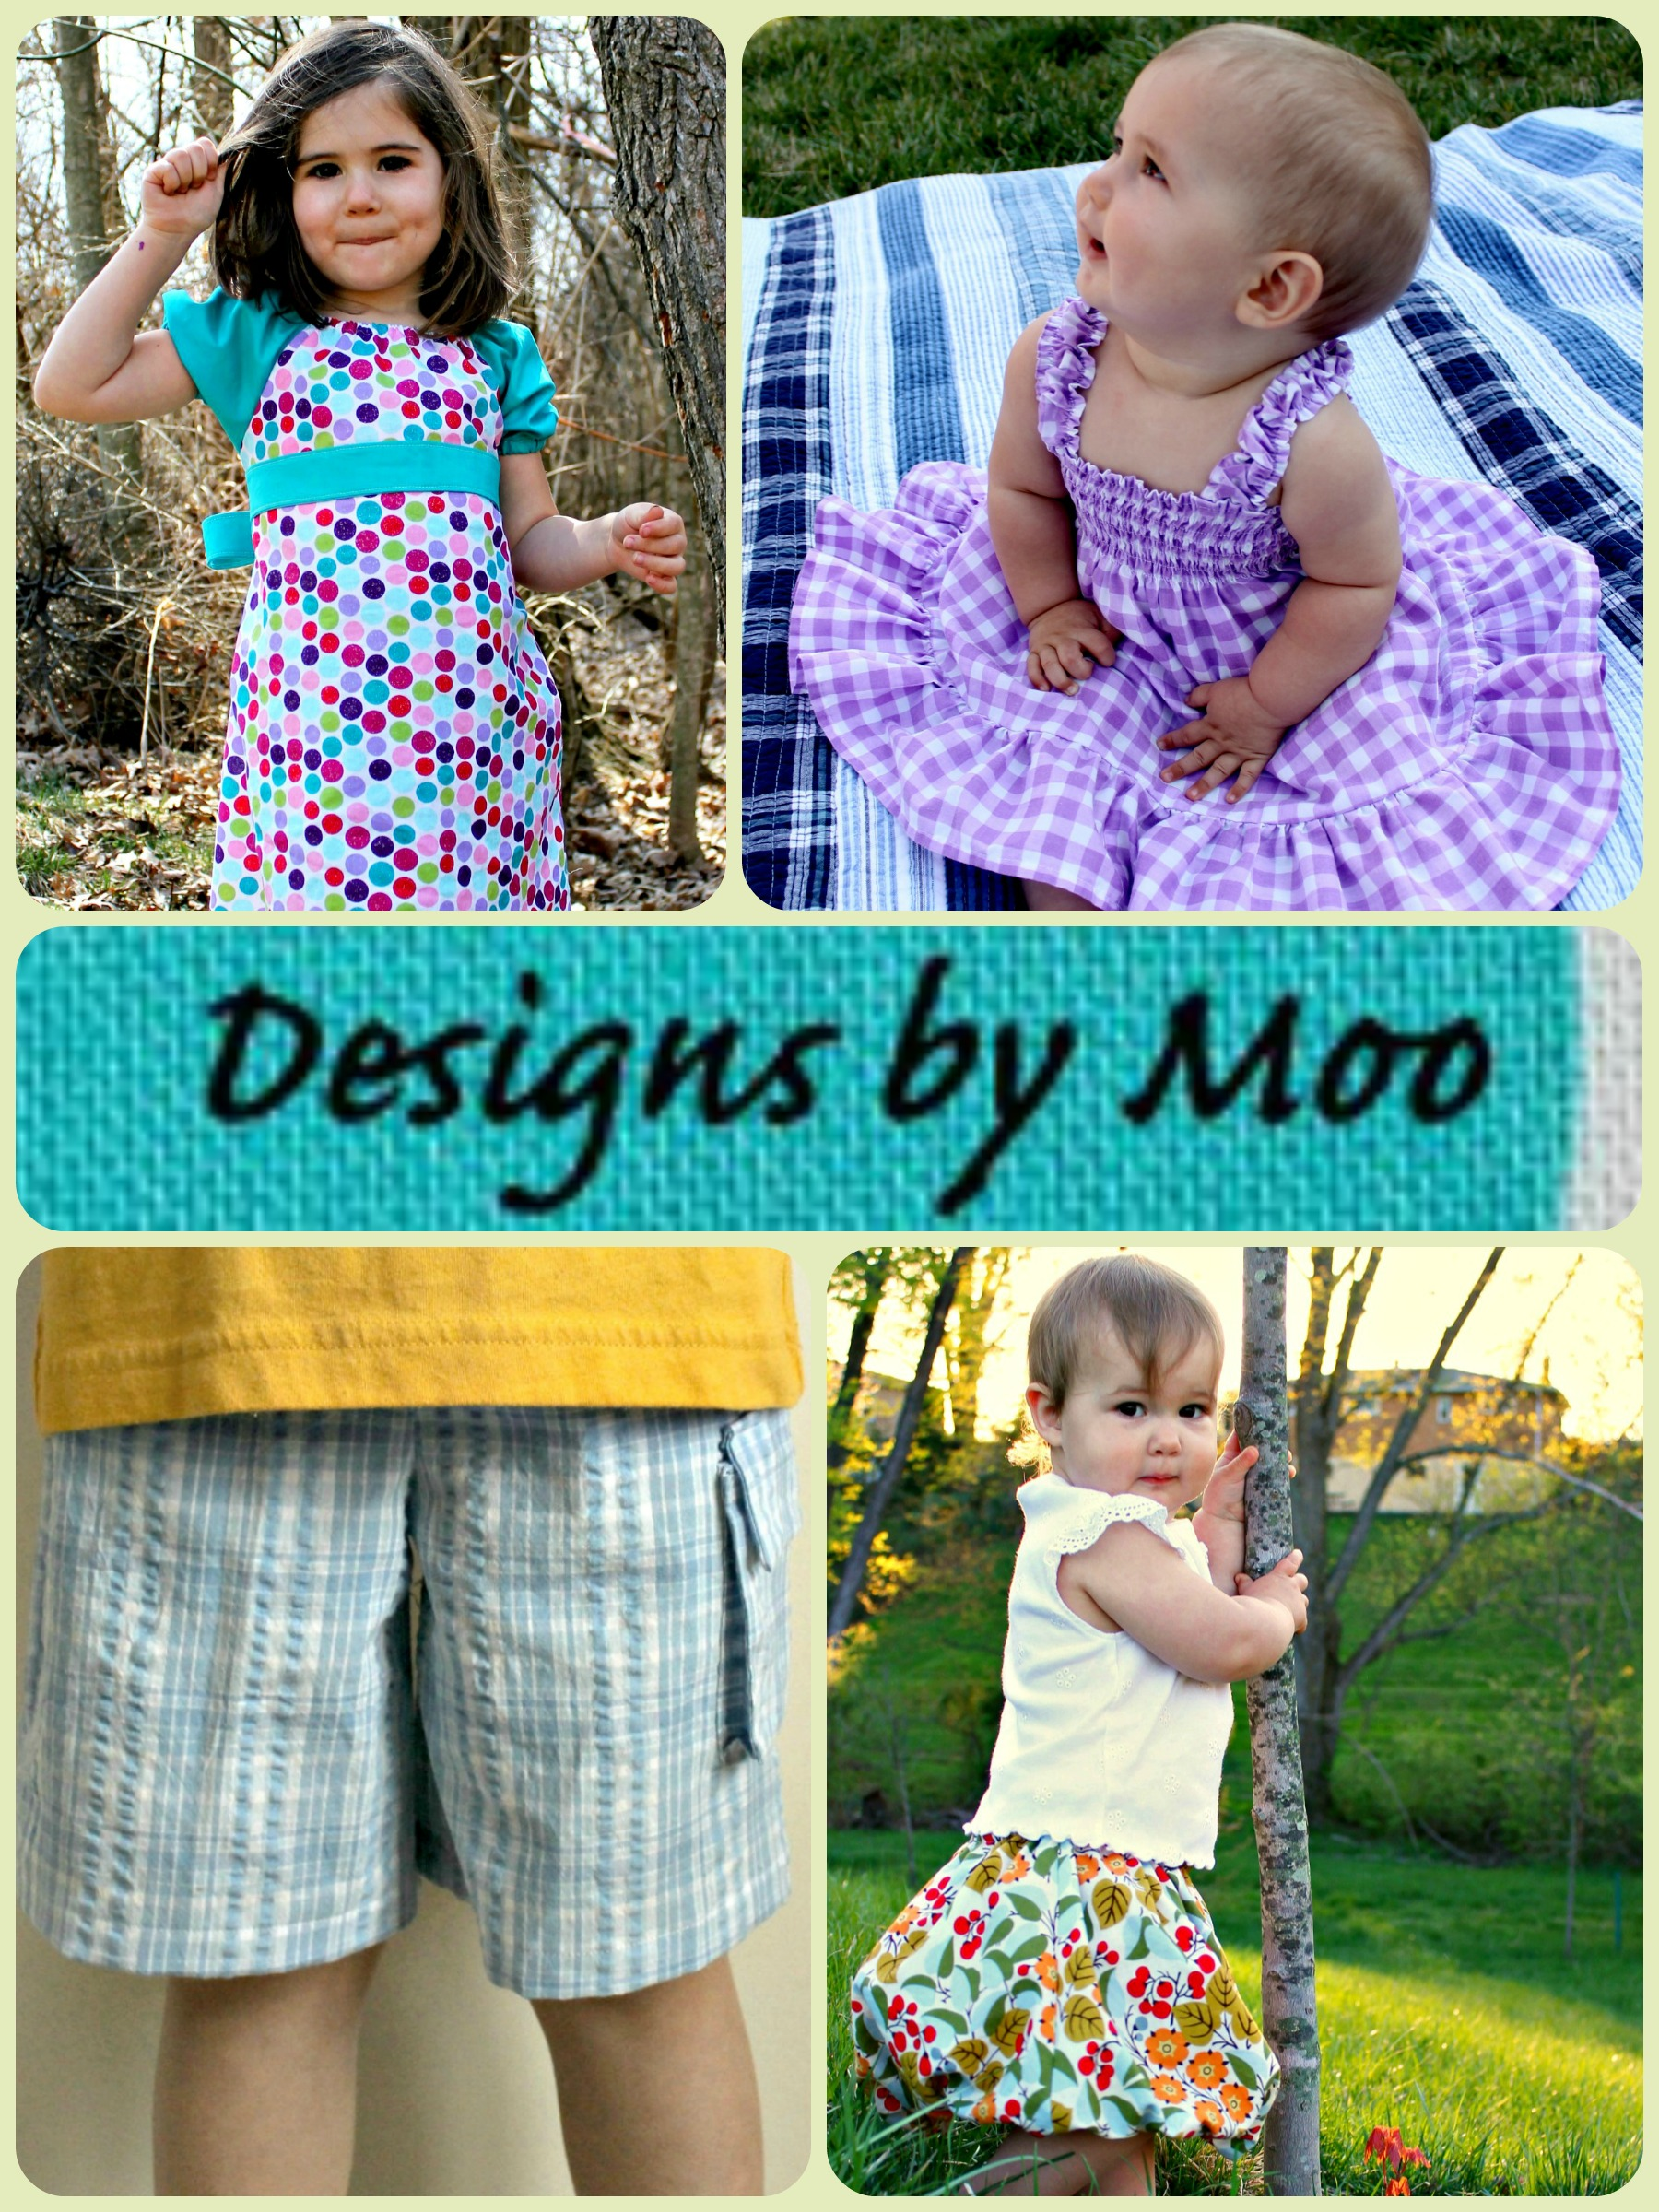 Designs by Moo